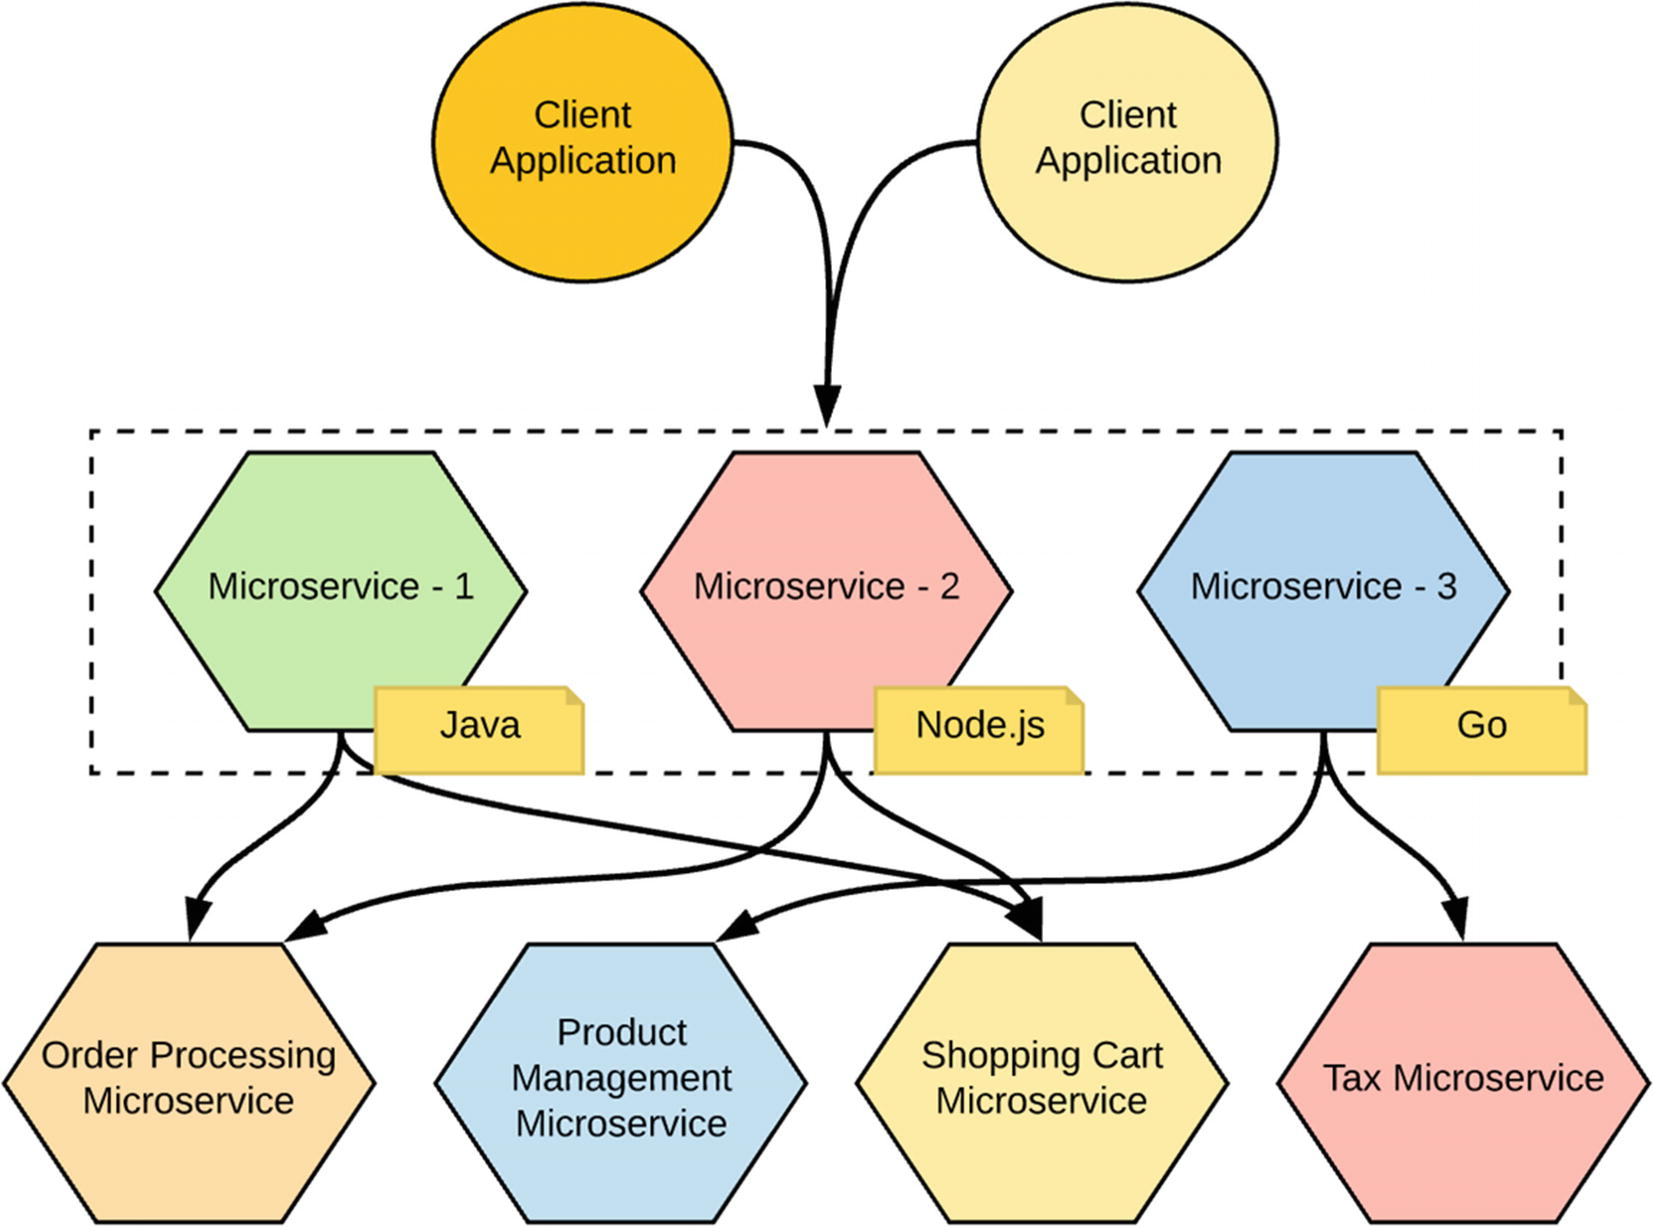 Integrating Microservices | SpringerLink